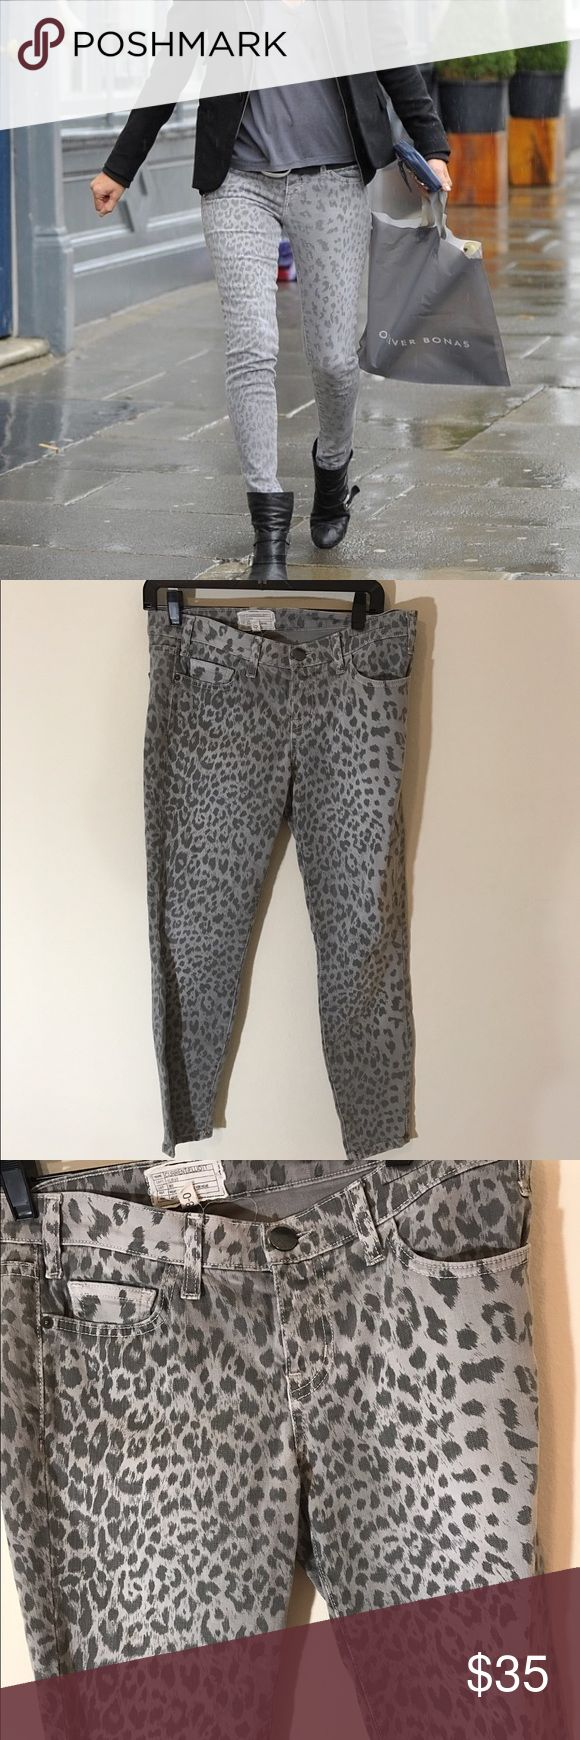 Current elliot printed skinnies In excellent condition! No signs of wear or damage. Super cute! Current/Elliott Jeans